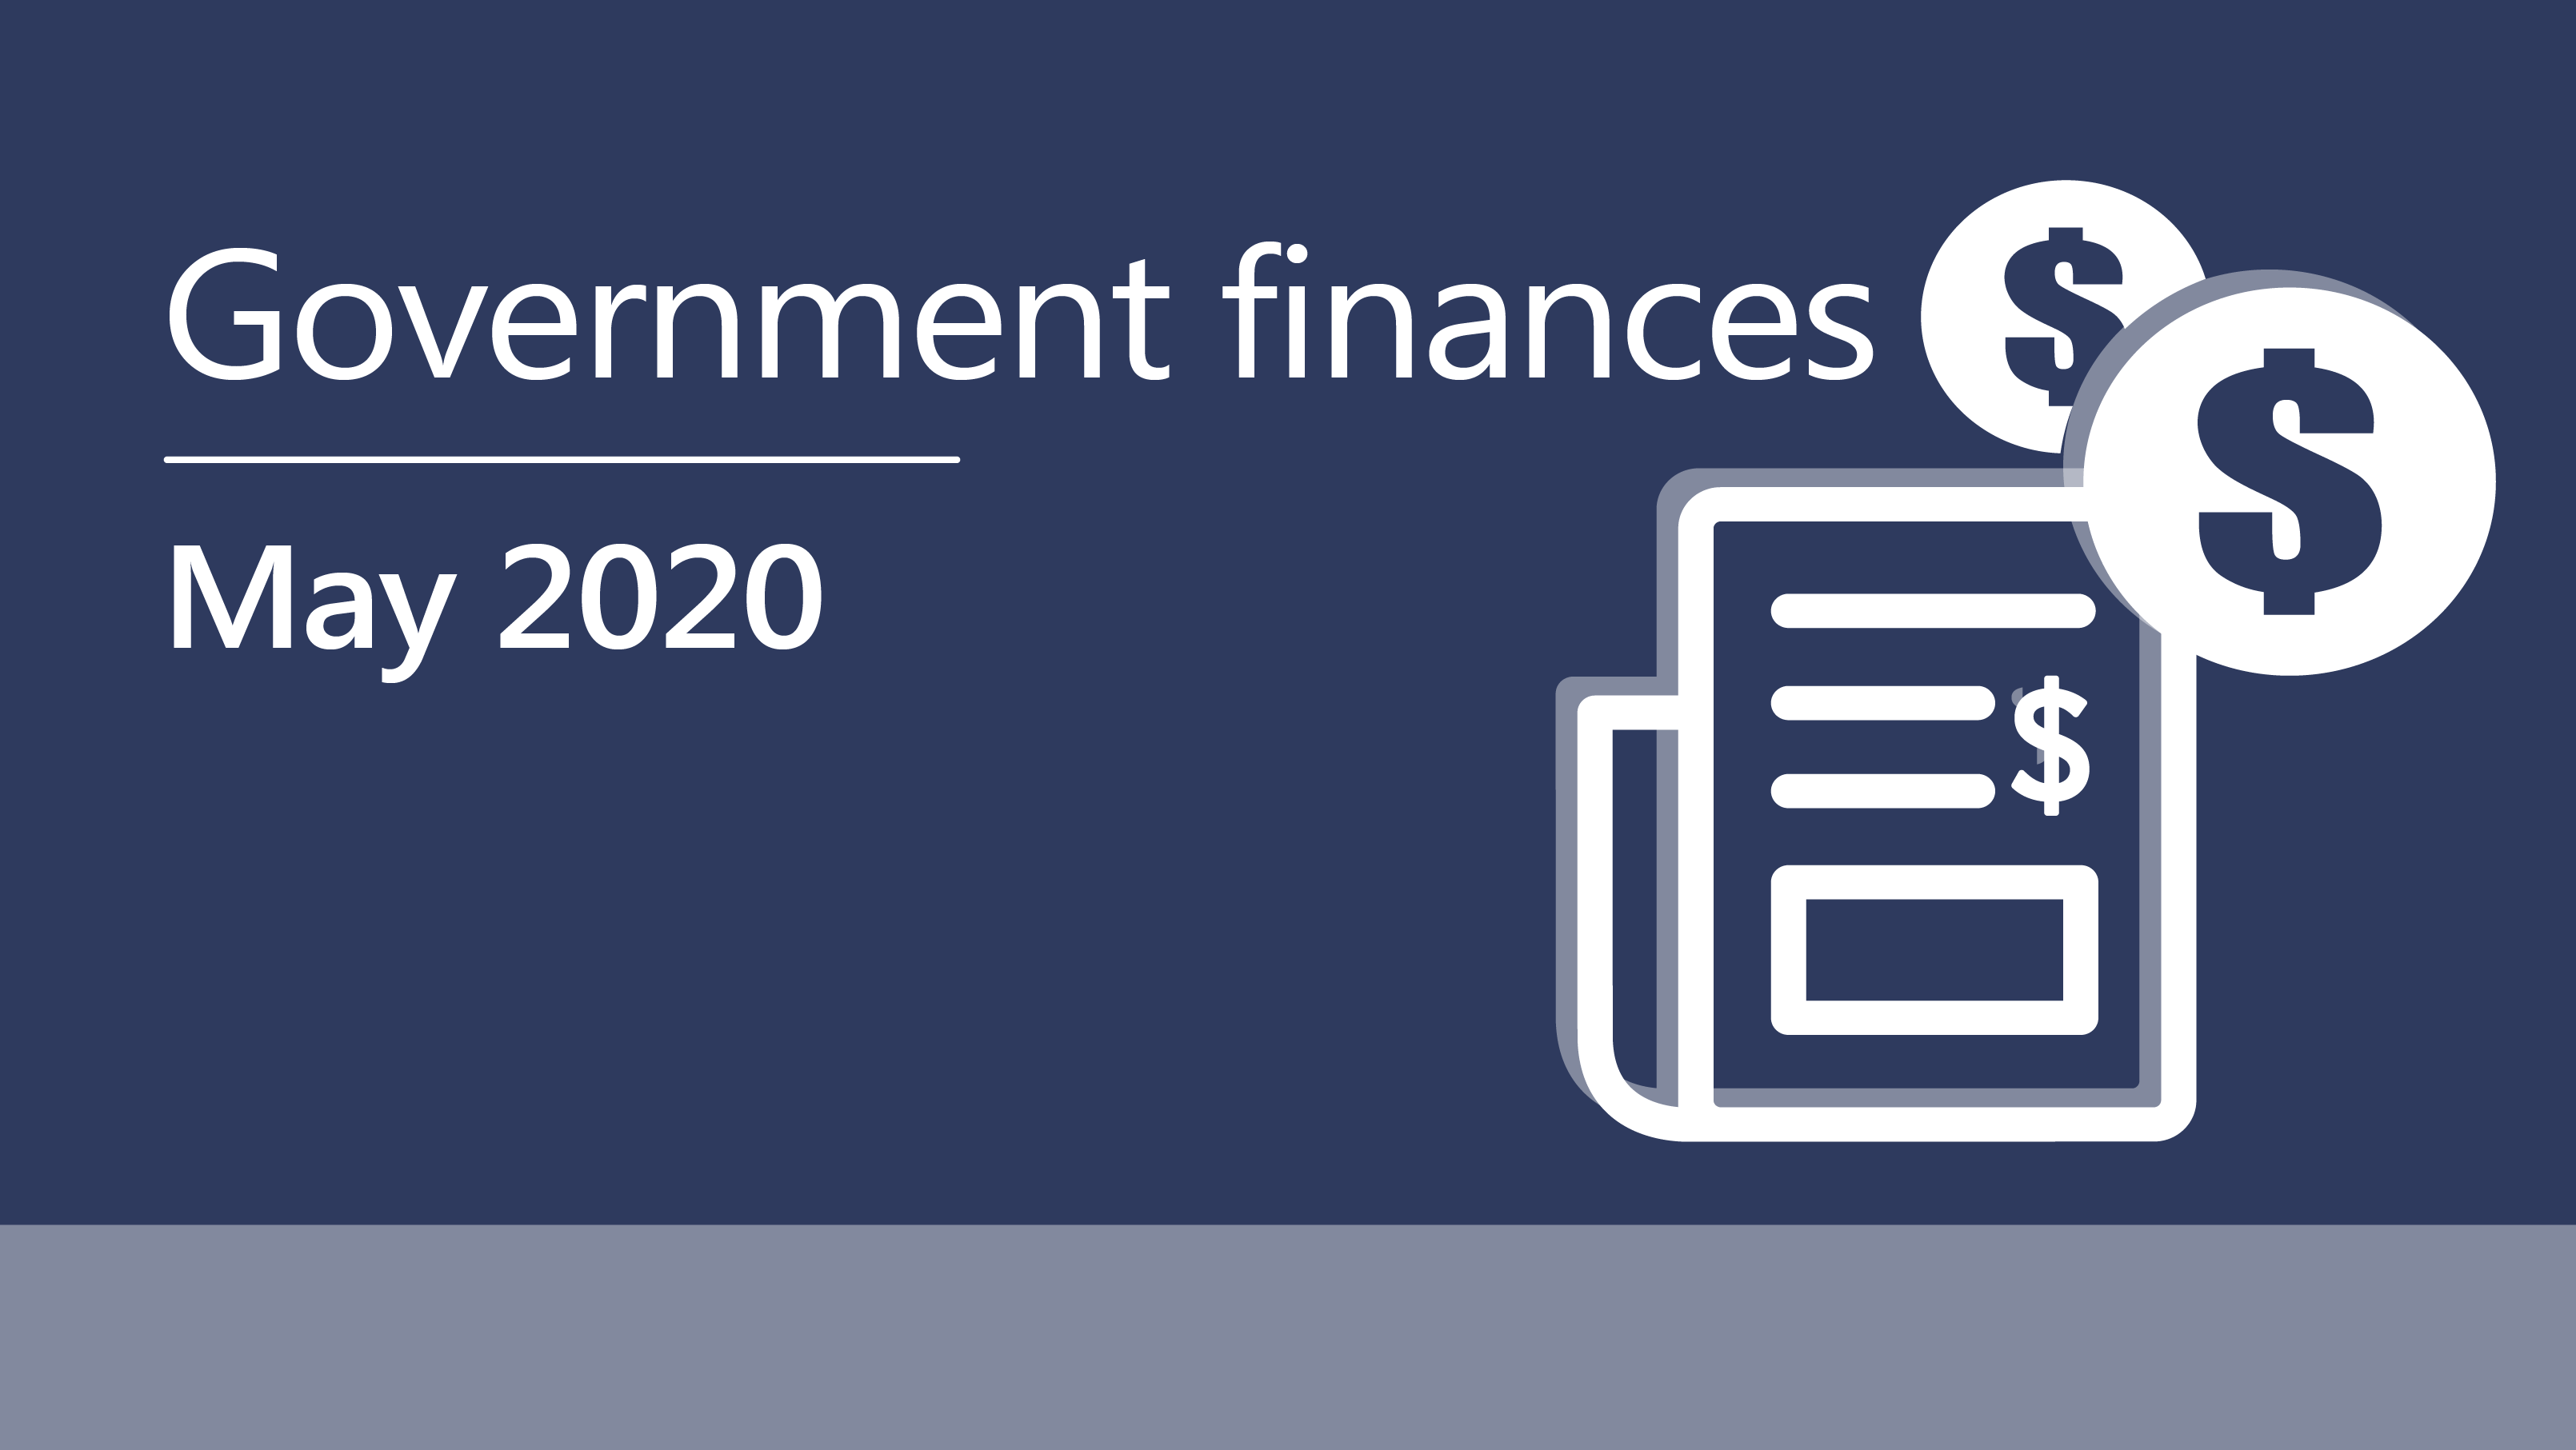 Government finances May 2020